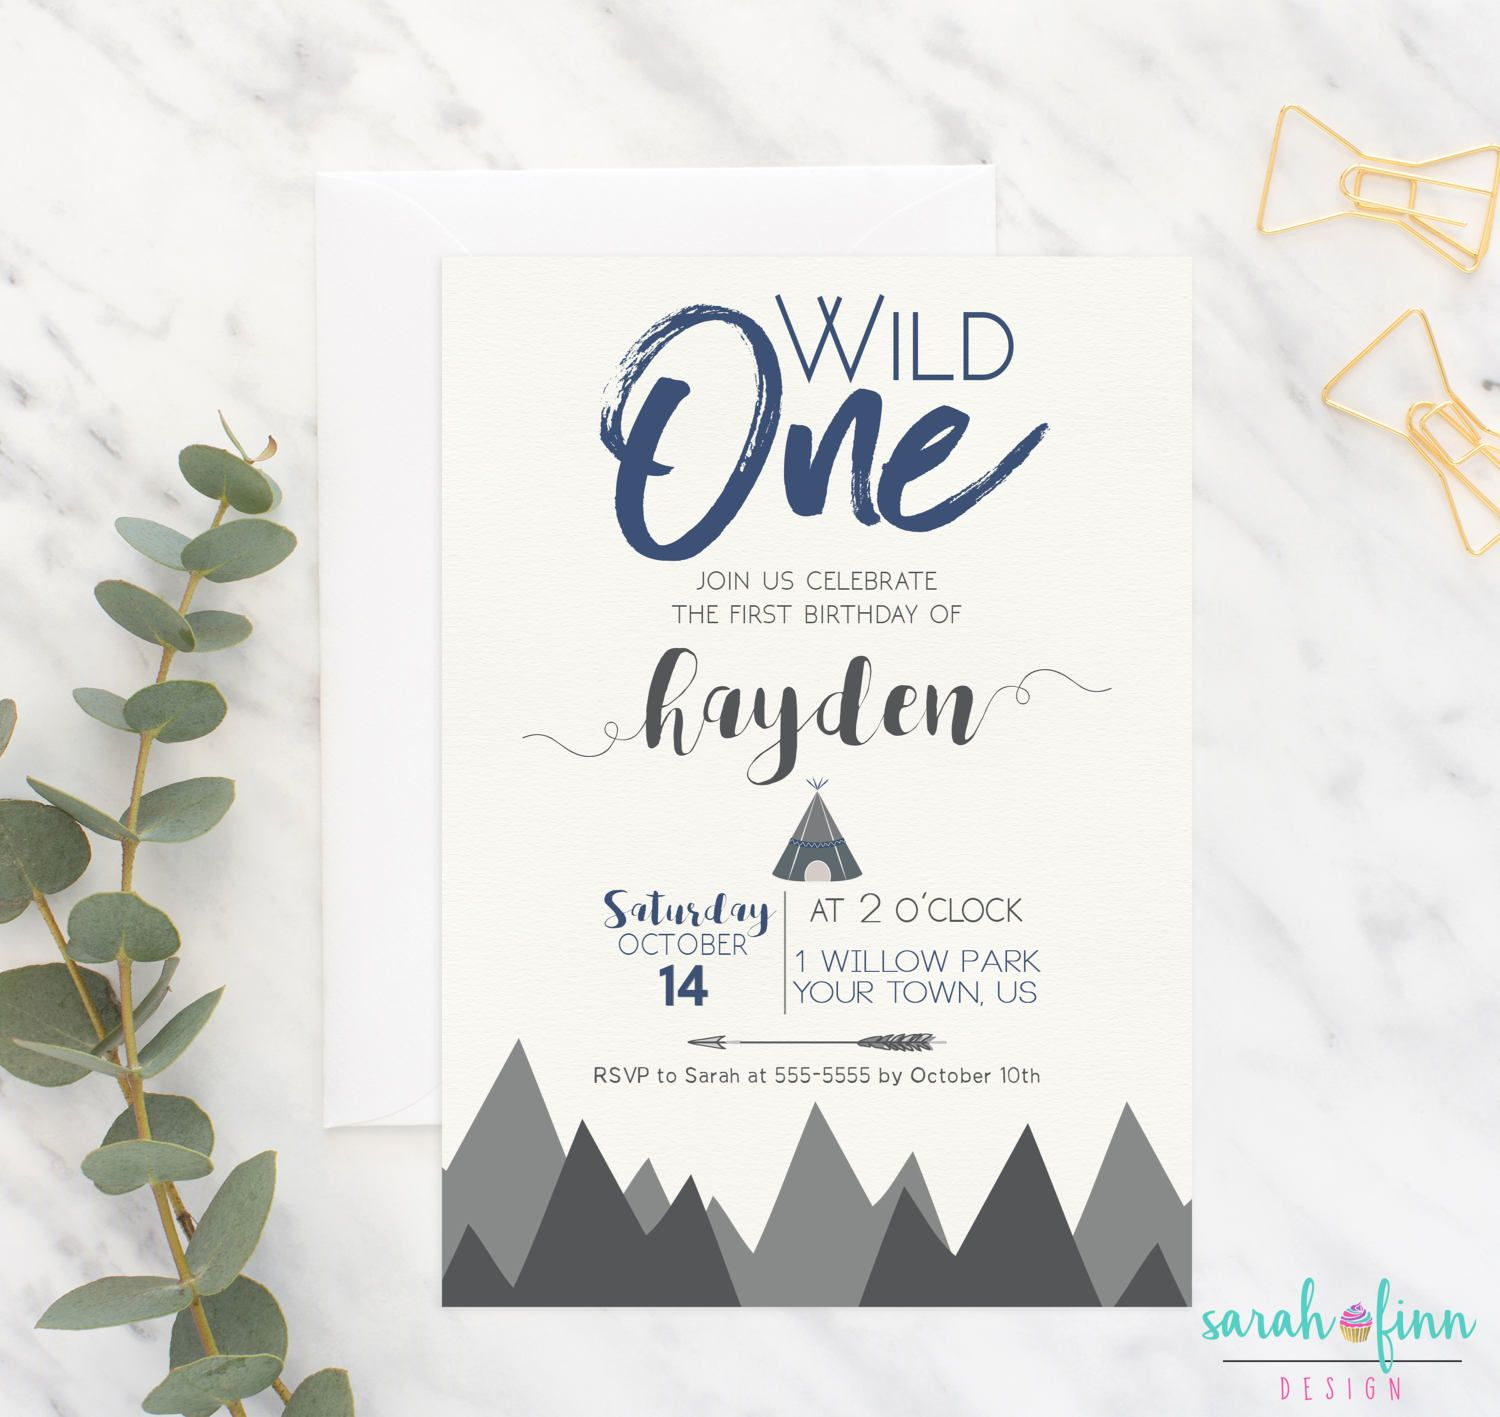 first birthday invitation template india%0A    wild one first birthday invitations  printed boy  st birthday invitations   black and white arrow invites  first birthday arrow invites   Arrow